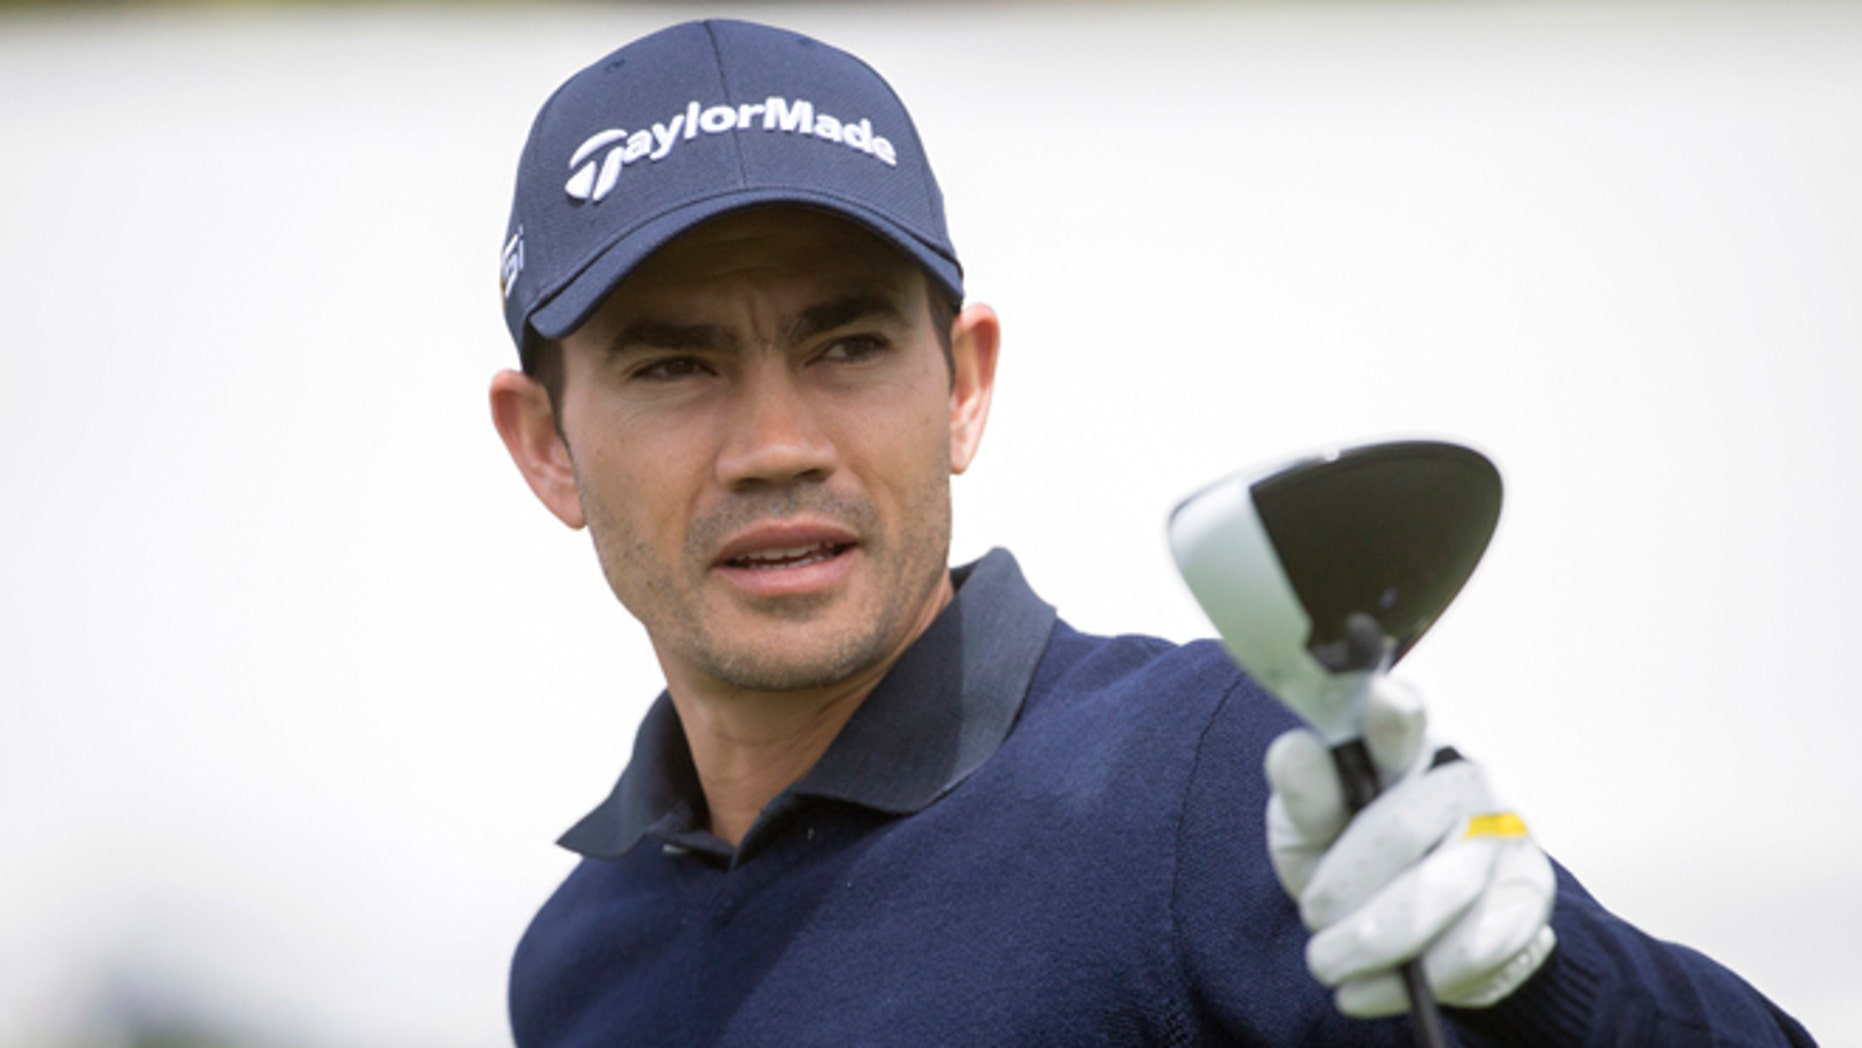 FILE - In this April 14, 2016, file photo, Camilo Villegas, of Colombia, prepares to tee off on the first hole during the first round of the RBC Heritage golf tournament in Hilton Head Island, S.C.  Villegas has pulled out of the Olympics because he is trying to keep his job on the PGA Tour. Villegas had indicated for the last two weeks that he wanted to be in Rio for golf's return to the Olympic program for the first time since 1904. But he is No. 146 in the FedEx Cup with only four tournaments remaining to get into the top 125 and keep full status on the tour. (AP Photo/Stephen B. Morton, File)